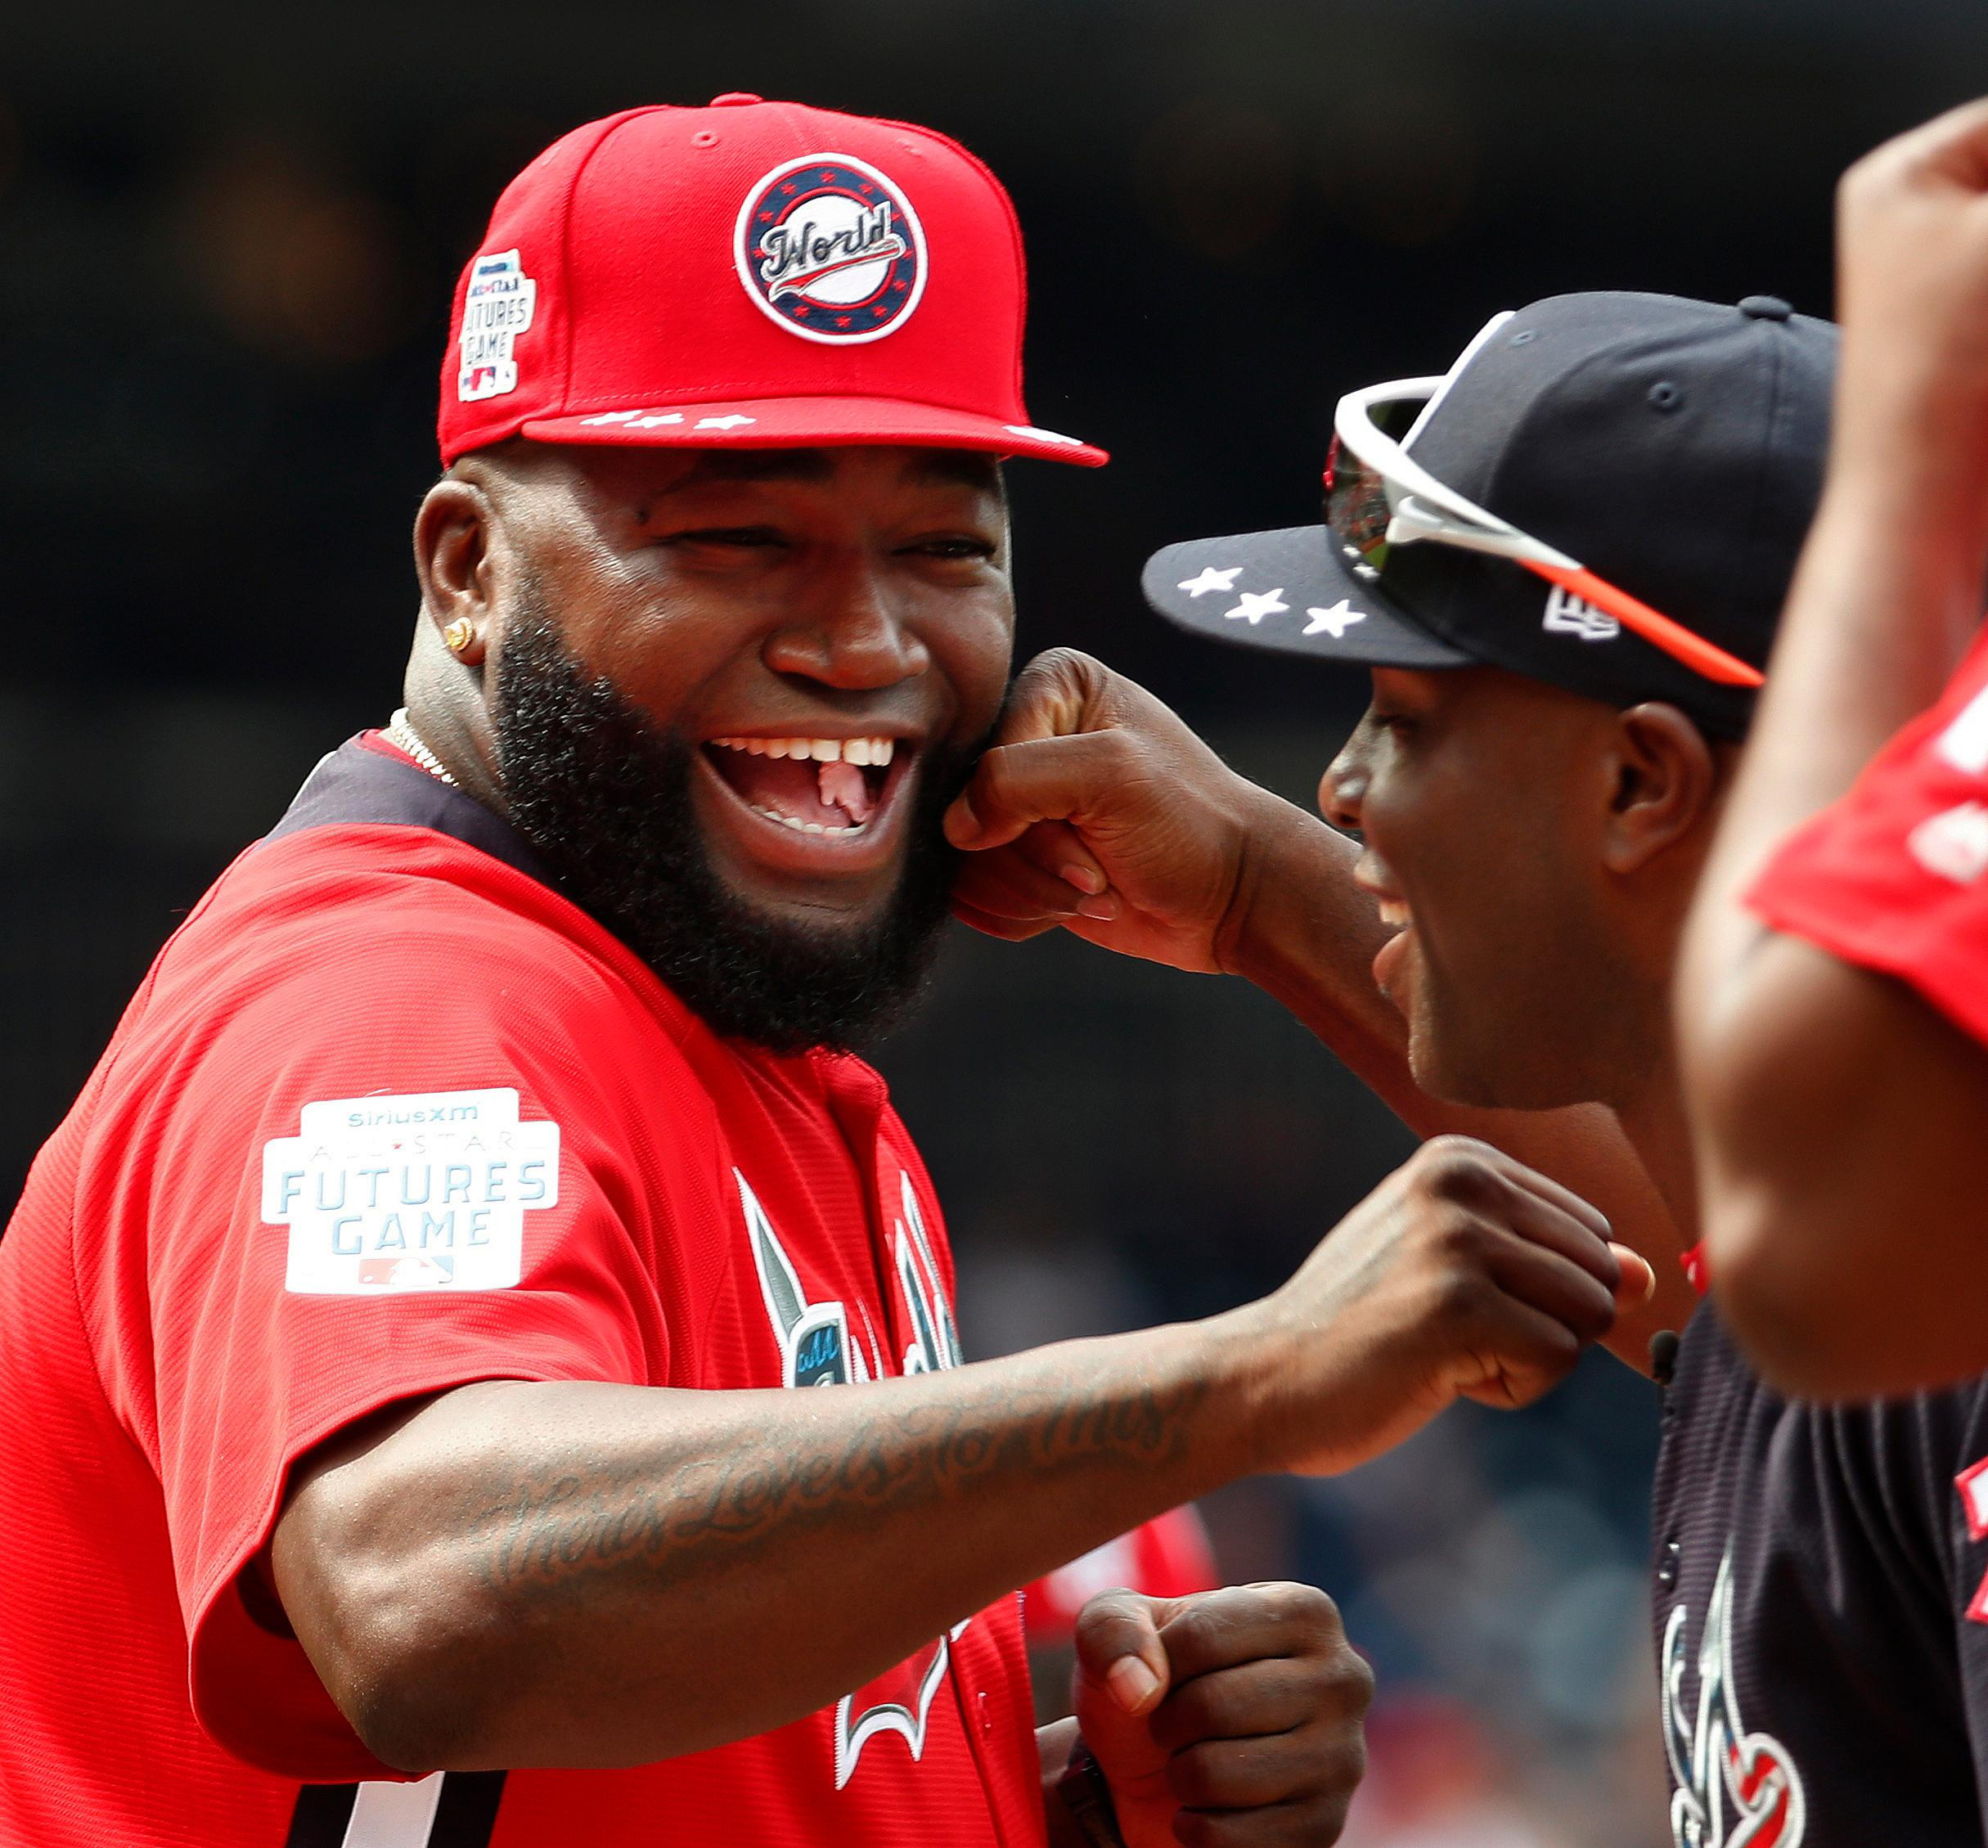 FILE - In this July 15, 2018, file photo, World Team Manager David Ortiz (34) speaks with U.S. Team Manager Torrii Hunter, before the All-Star Futures baseball game at Nationals Park, in Washington. Ortiz returned to Boston for medical care after being shot in a bar Sunday, June 9, 2019, in his native Dominican Republic. (AP Photo/Alex Brandon, File)